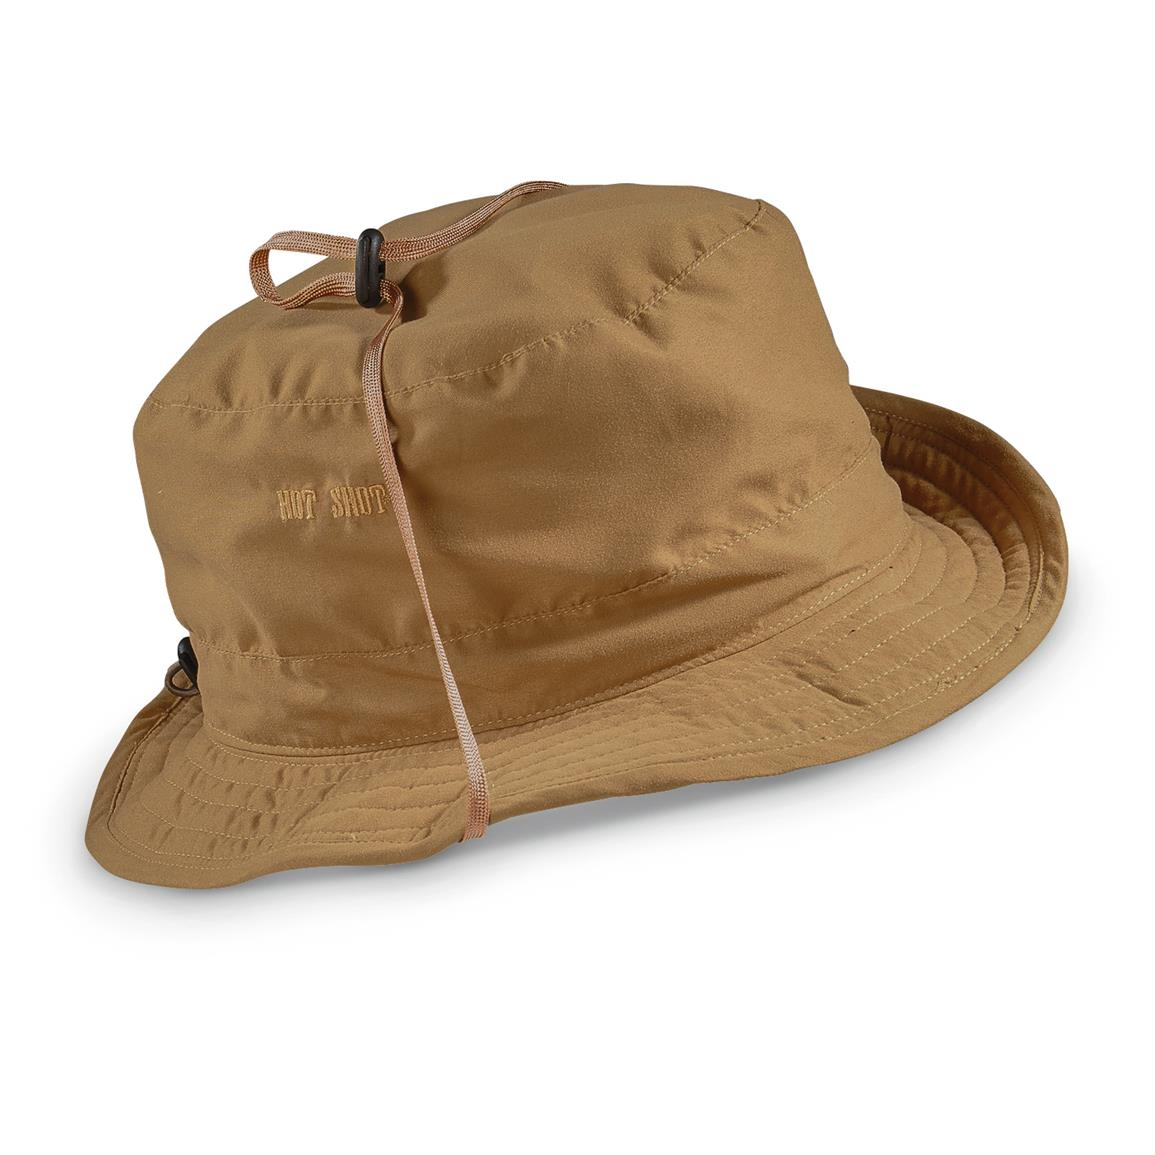 Hot Shot Men's Drawstring Ranger Safari Hat, Brown